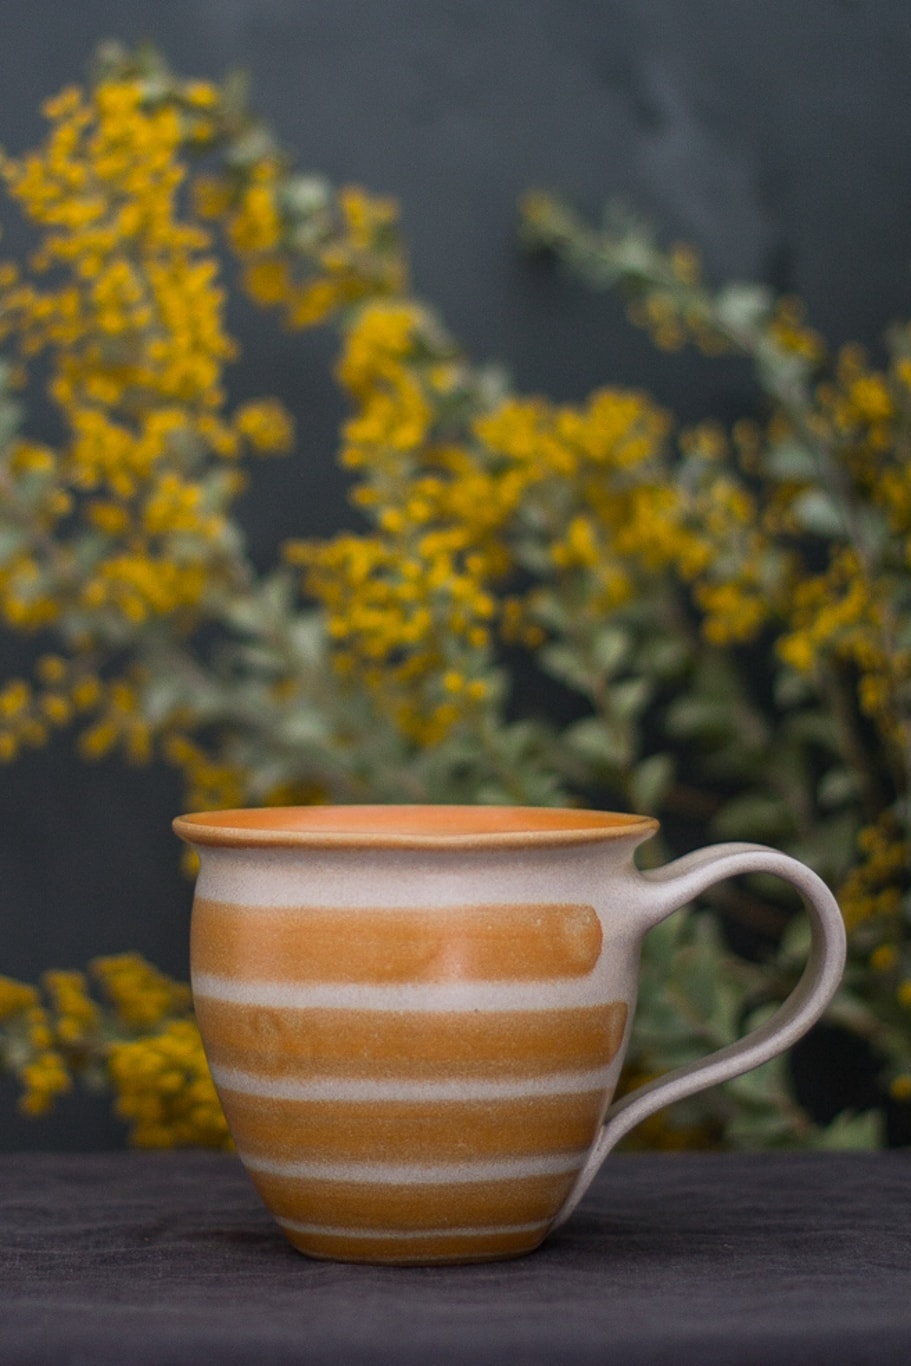 orange stripe ceramic cup with yellow flowers in the background